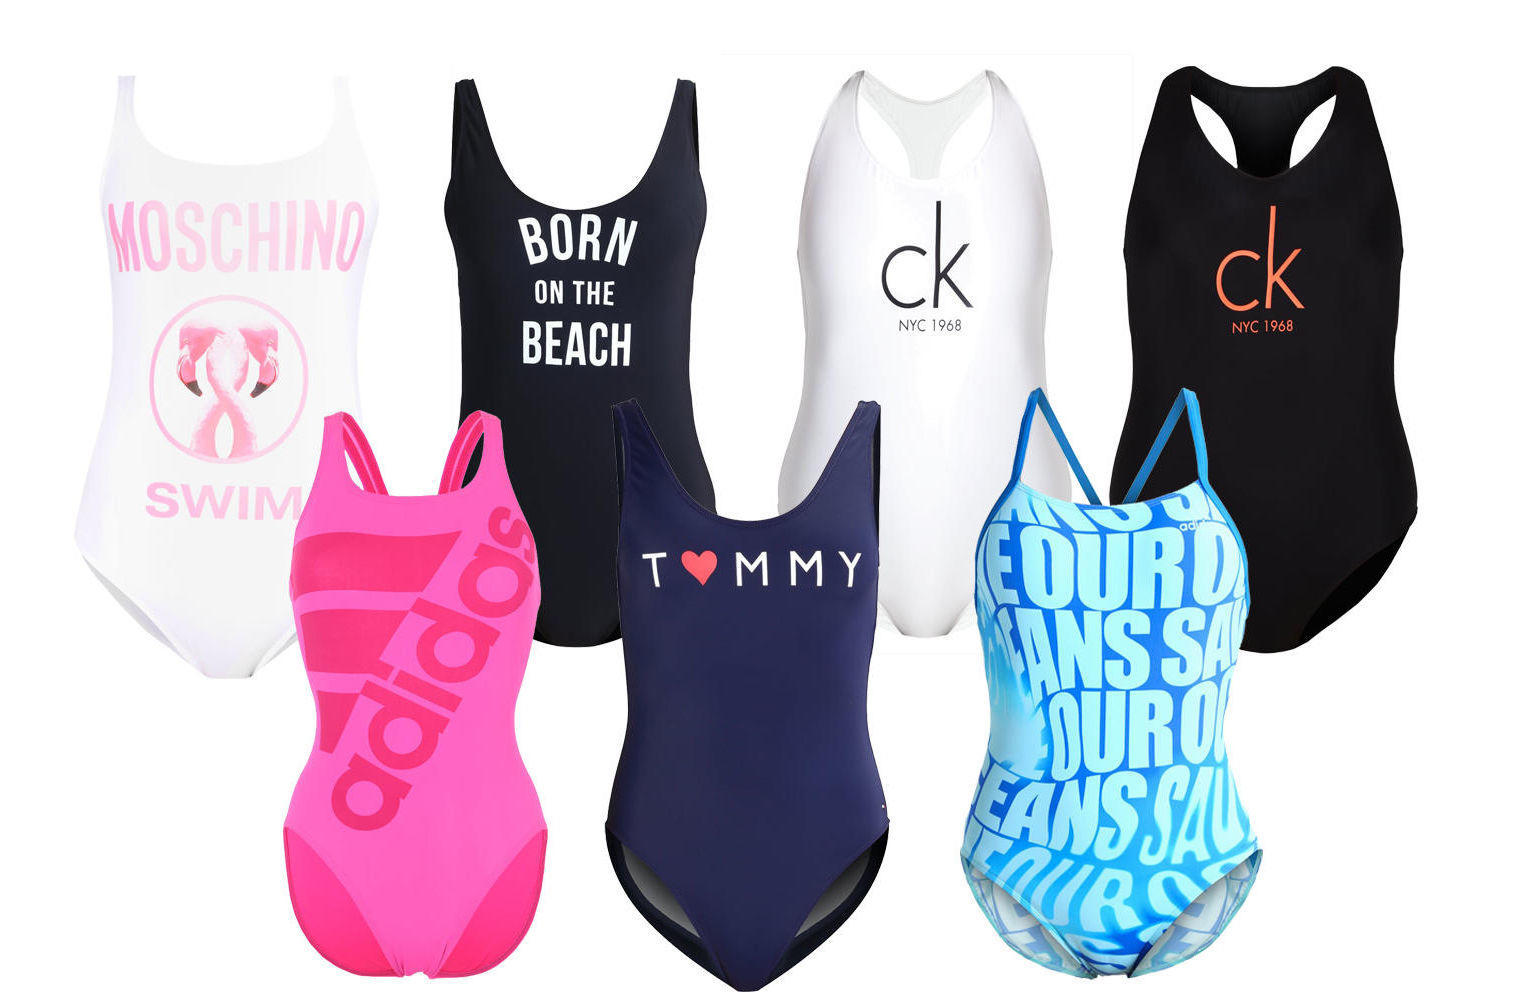 4c1f18a3 Badedrakt fra MOSCHINO HER – ADIDAS HER – BANANA MOON HER – TOMMY HILFIGER  HER – CK HER – ADIDAS HER – CK HER